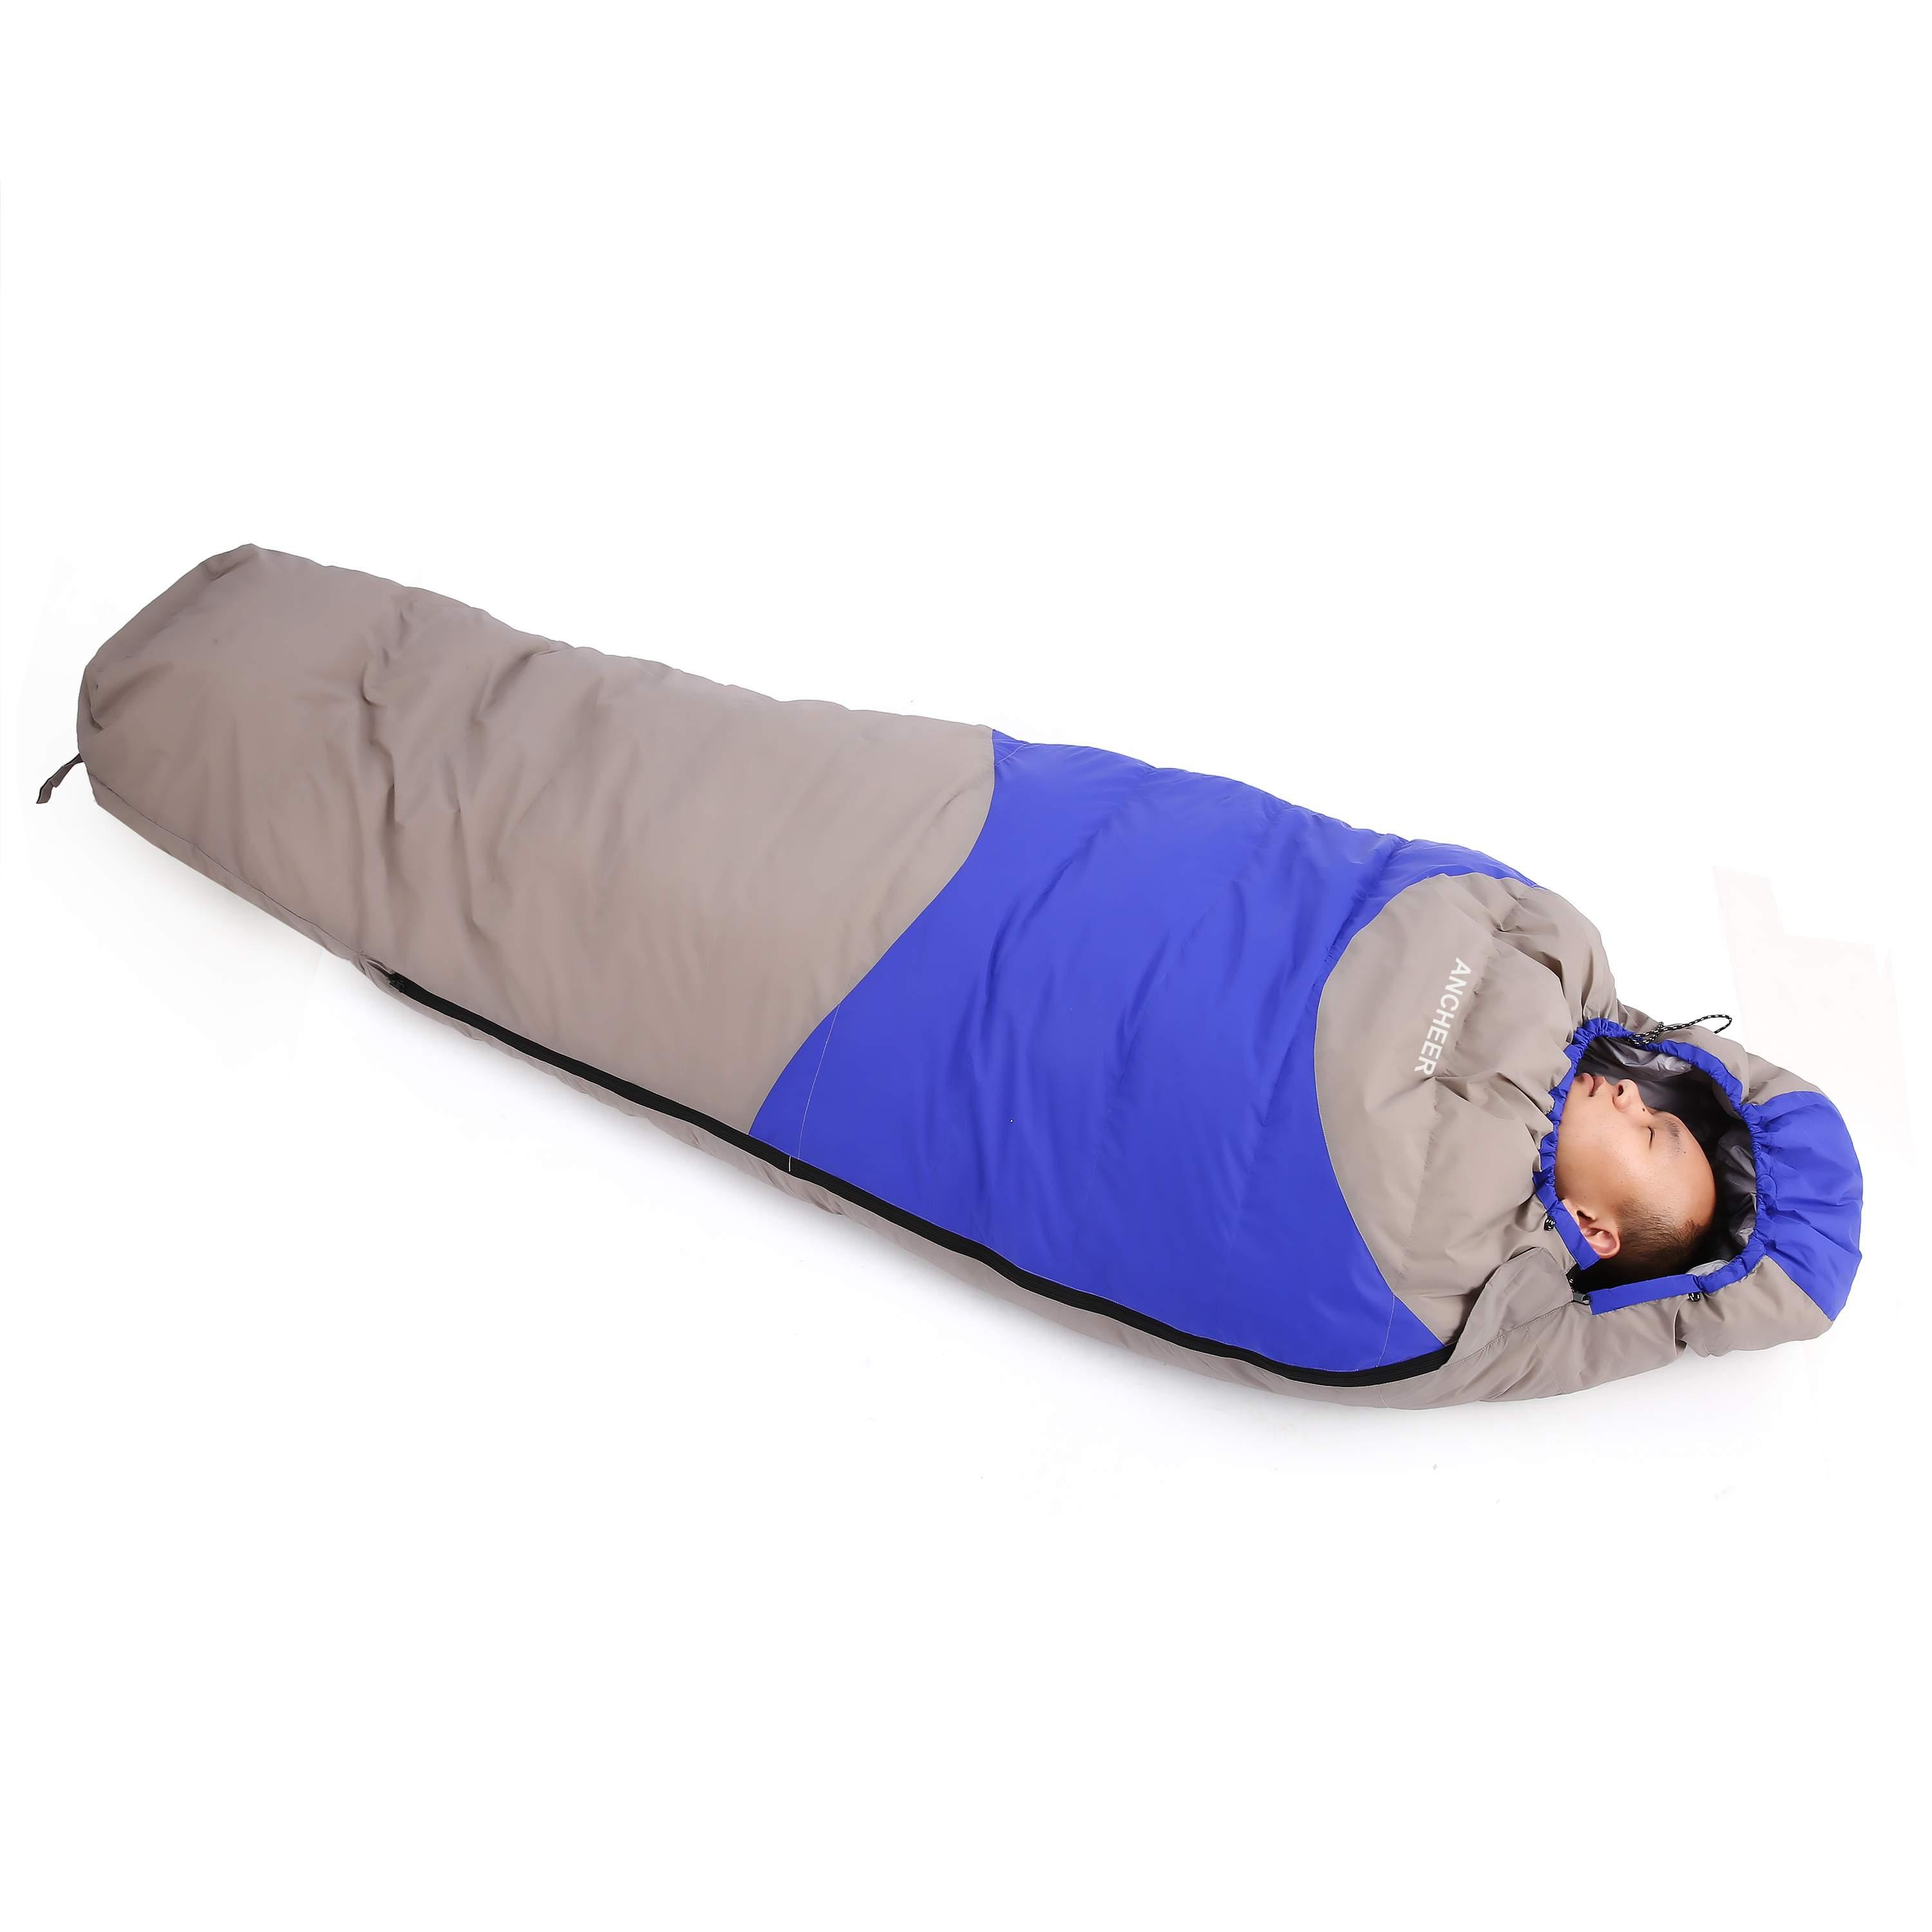 Foldable 15 Degree Ultralight Mummy Down Sleeping Bag Winter for Camping Hiking Travel by